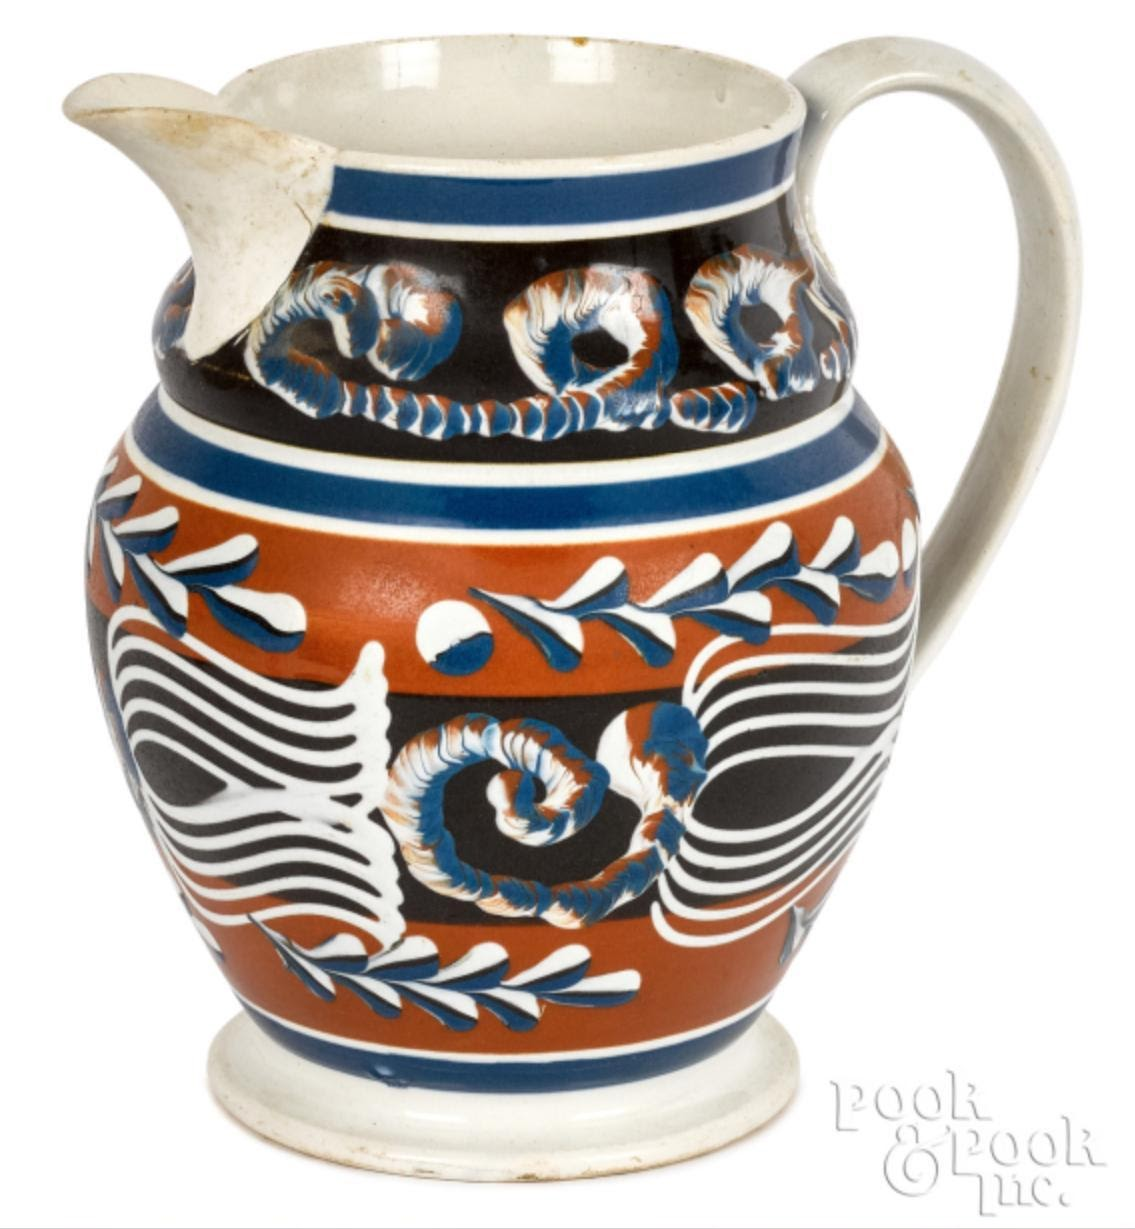 Mocha pitcher sold for $13,530. Image from Pook & Pook, Inc.